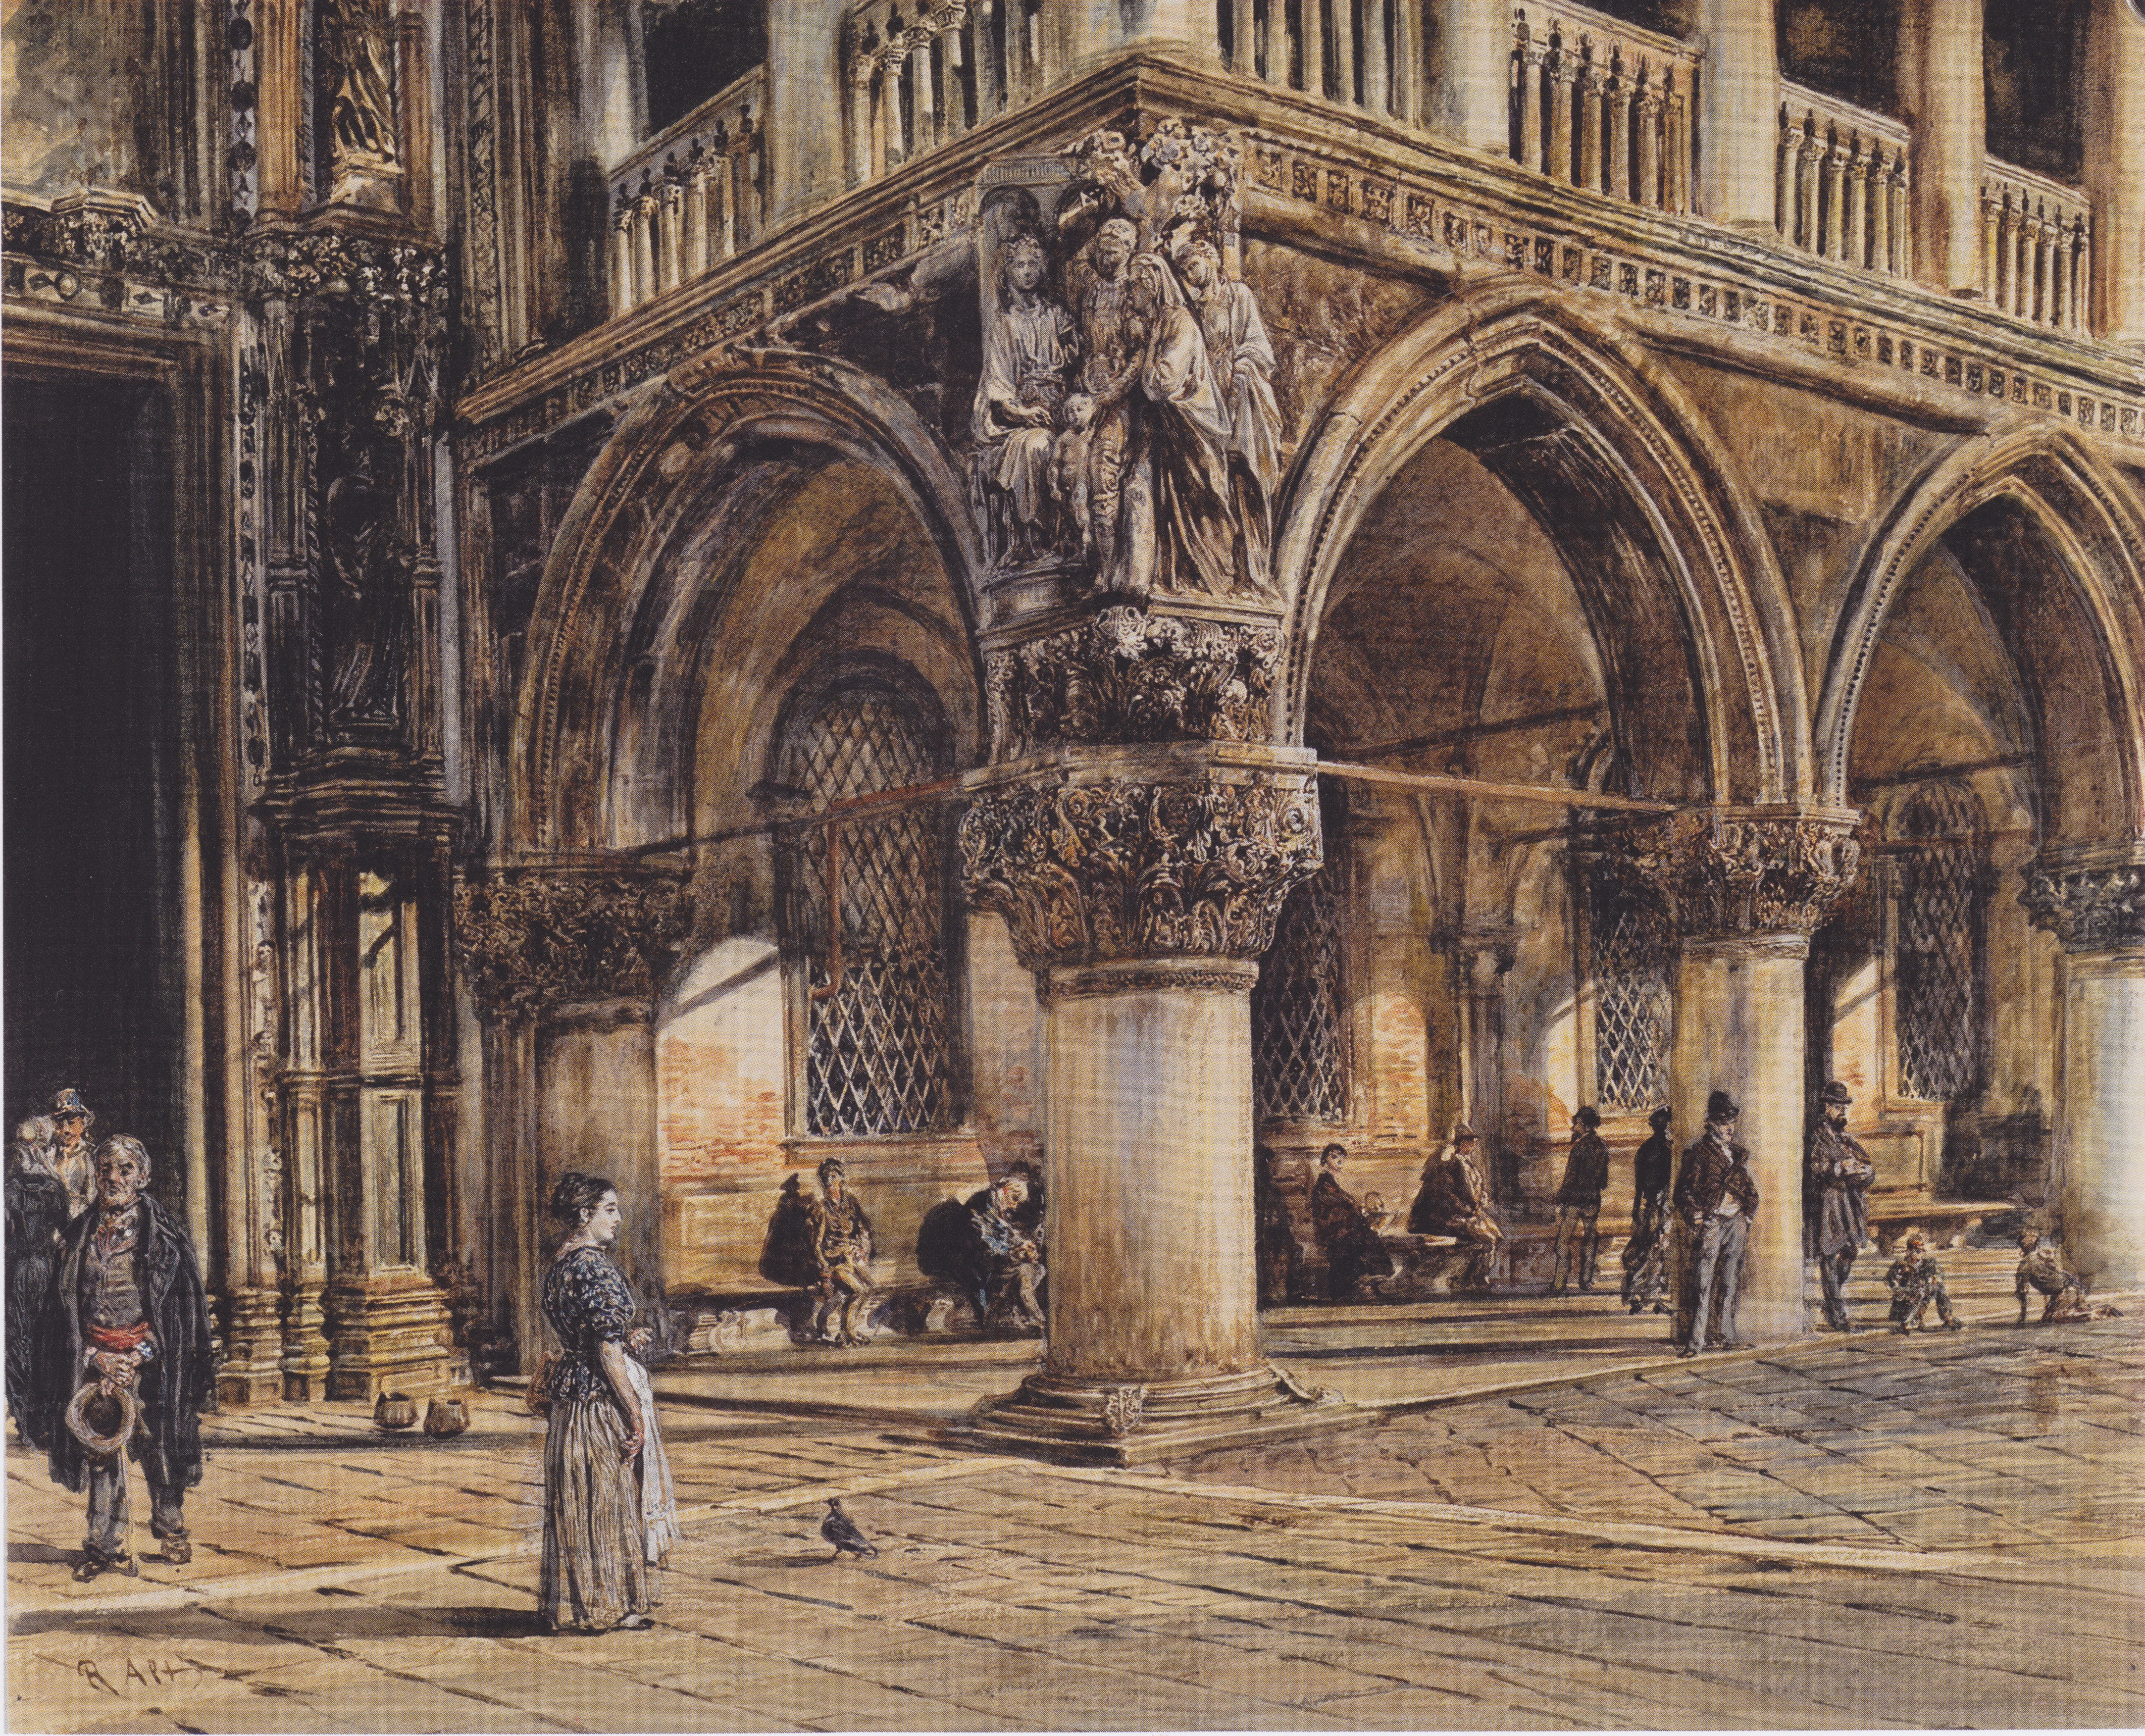 View of the Ducal Palace in Venice, 1874